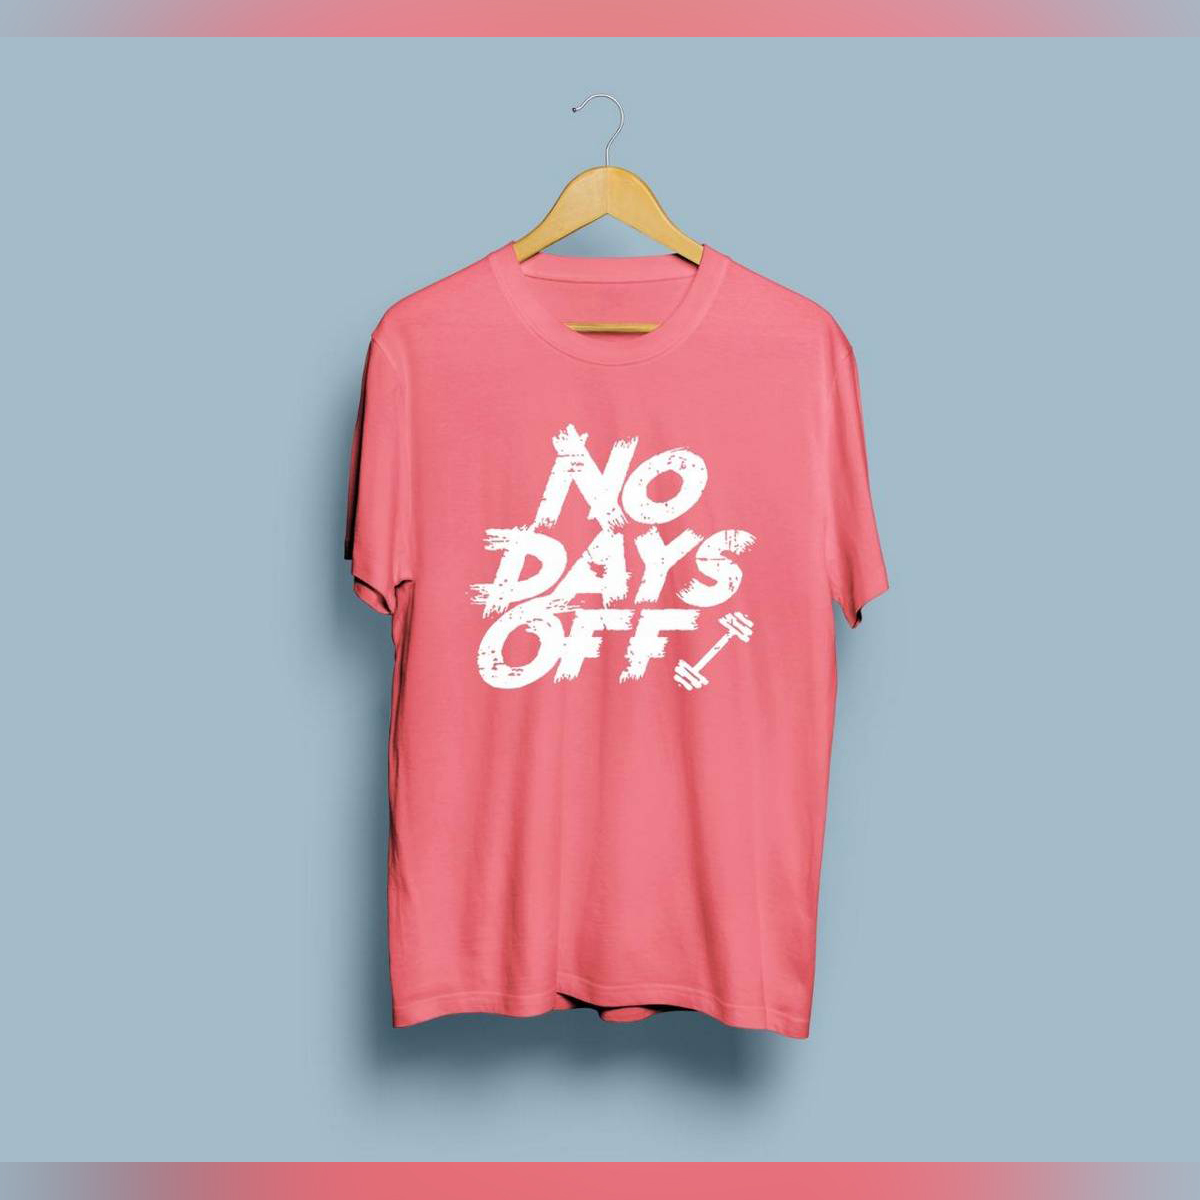 No Days Off Gym Motivational Lines Printed Casual Cotton Summer Wear T Shirts Round Neck Half Sleeves Export Quality Tees For Unisex